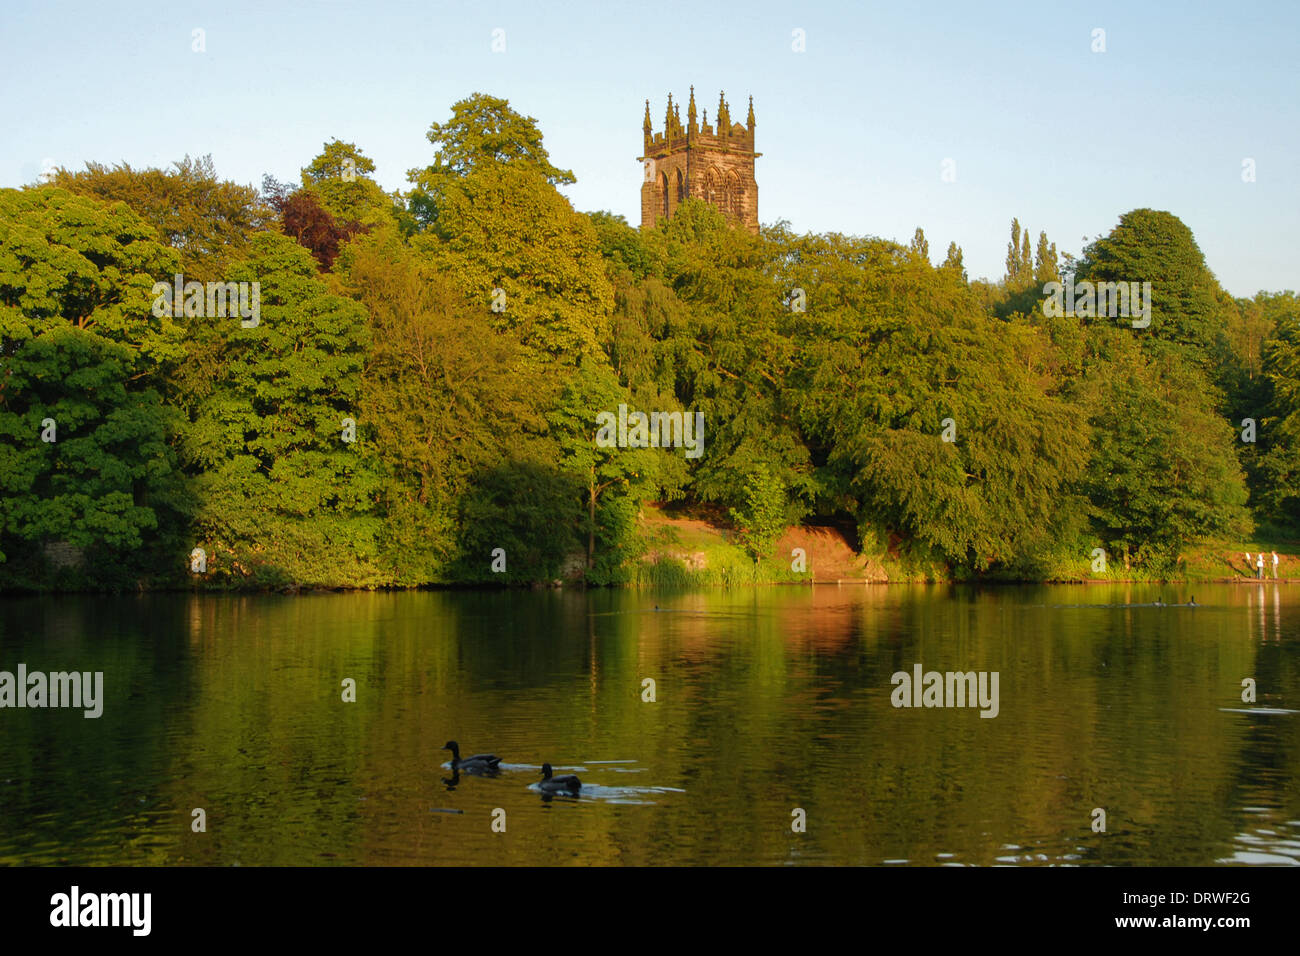 Ducks on the Lymm Dam, in Lymm, Cheshire, with the tower of St Mary's Church in the evening sun - Stock Image